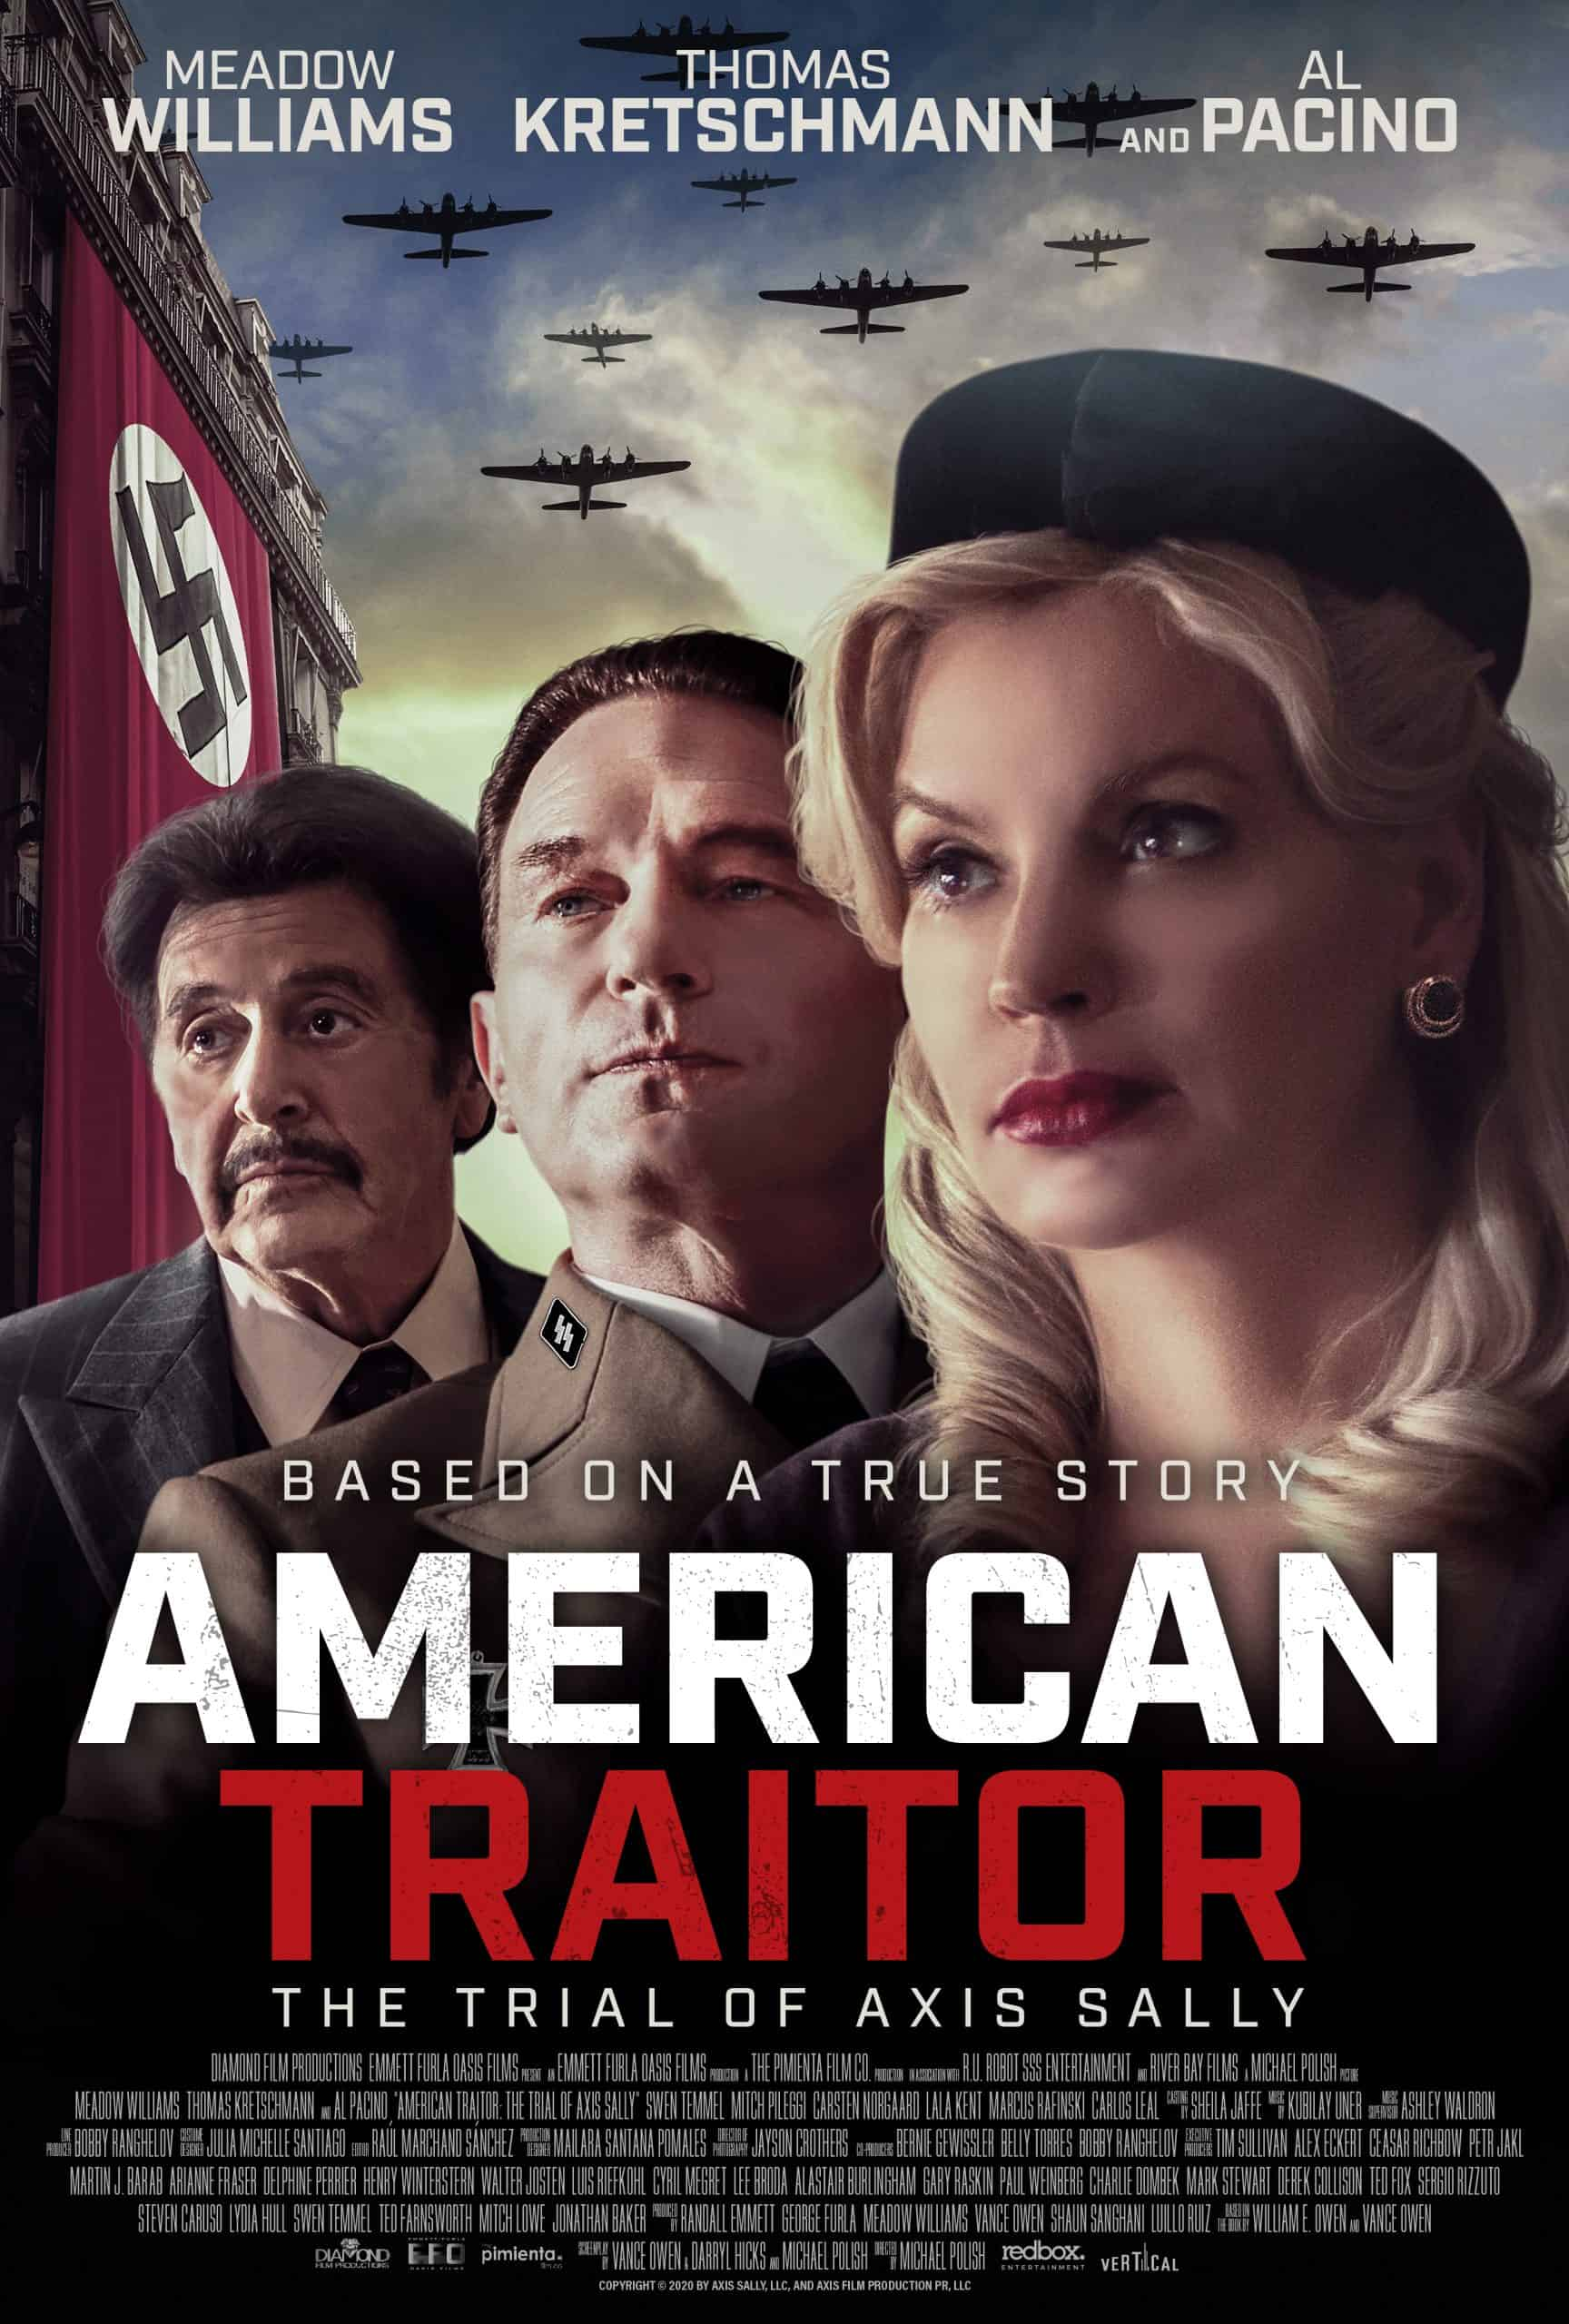 AMERICAN TRAITOR: THE TRIAL OF AXIS SALLY - In Select Theaters & On Demand NOW - WATCH SOME CLIPS! 2